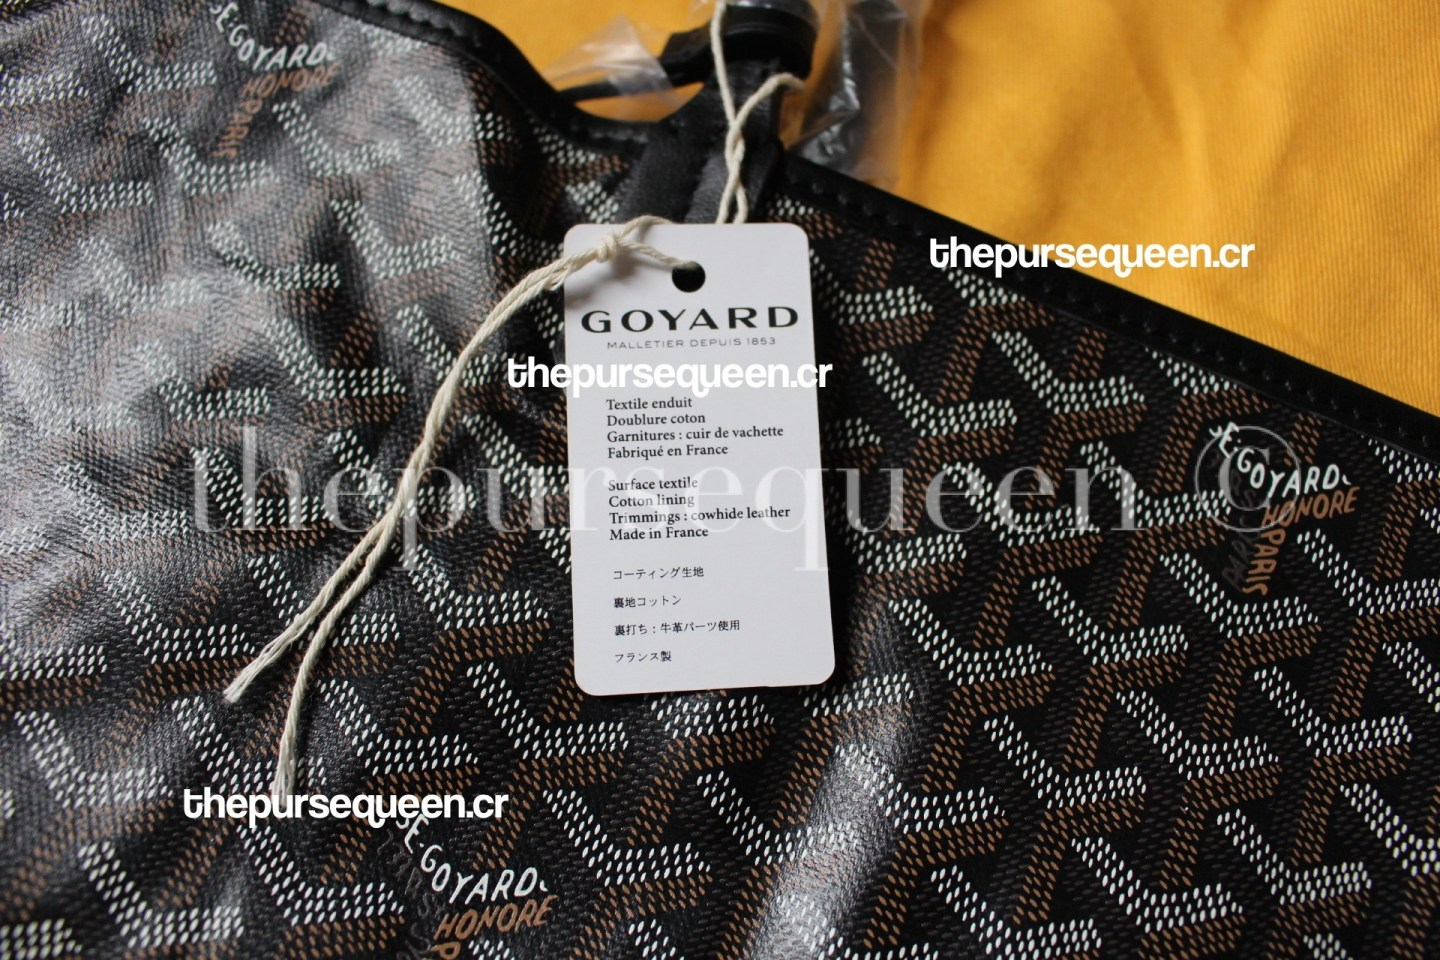 goyard-replica-saint-st-louis-tote-review-replicabags-fakevsreal-4